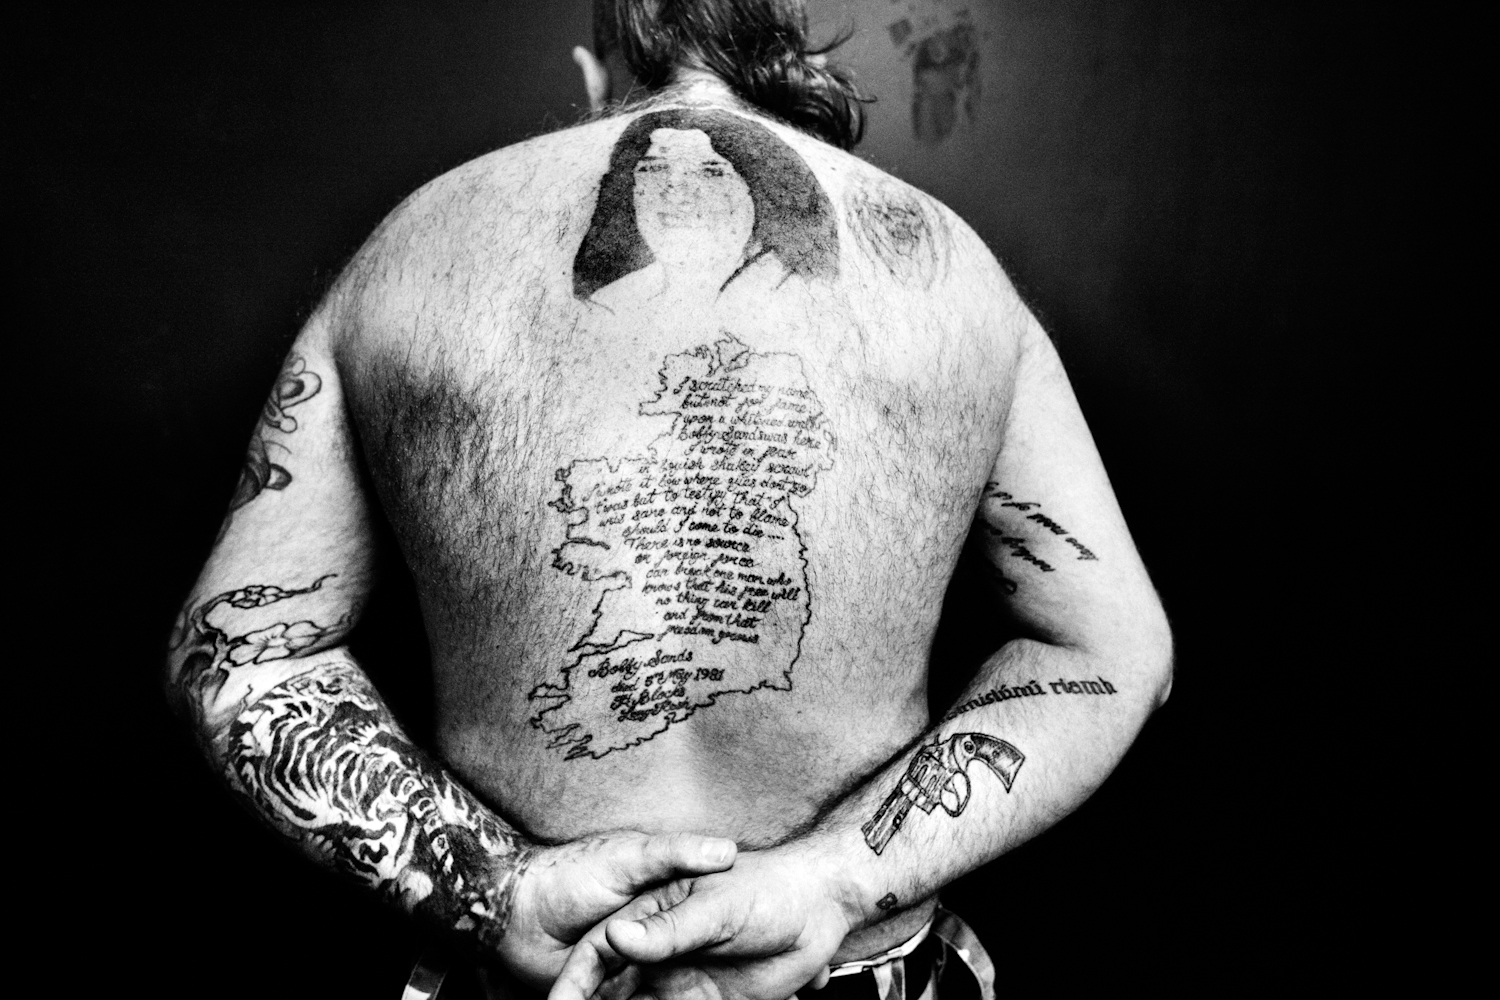 Independent on my skin 7 : Philip (40) - Dublin - A portrait of Bobby Sands and the map of the Irish Free State. // from seriea about IRA terrorists.